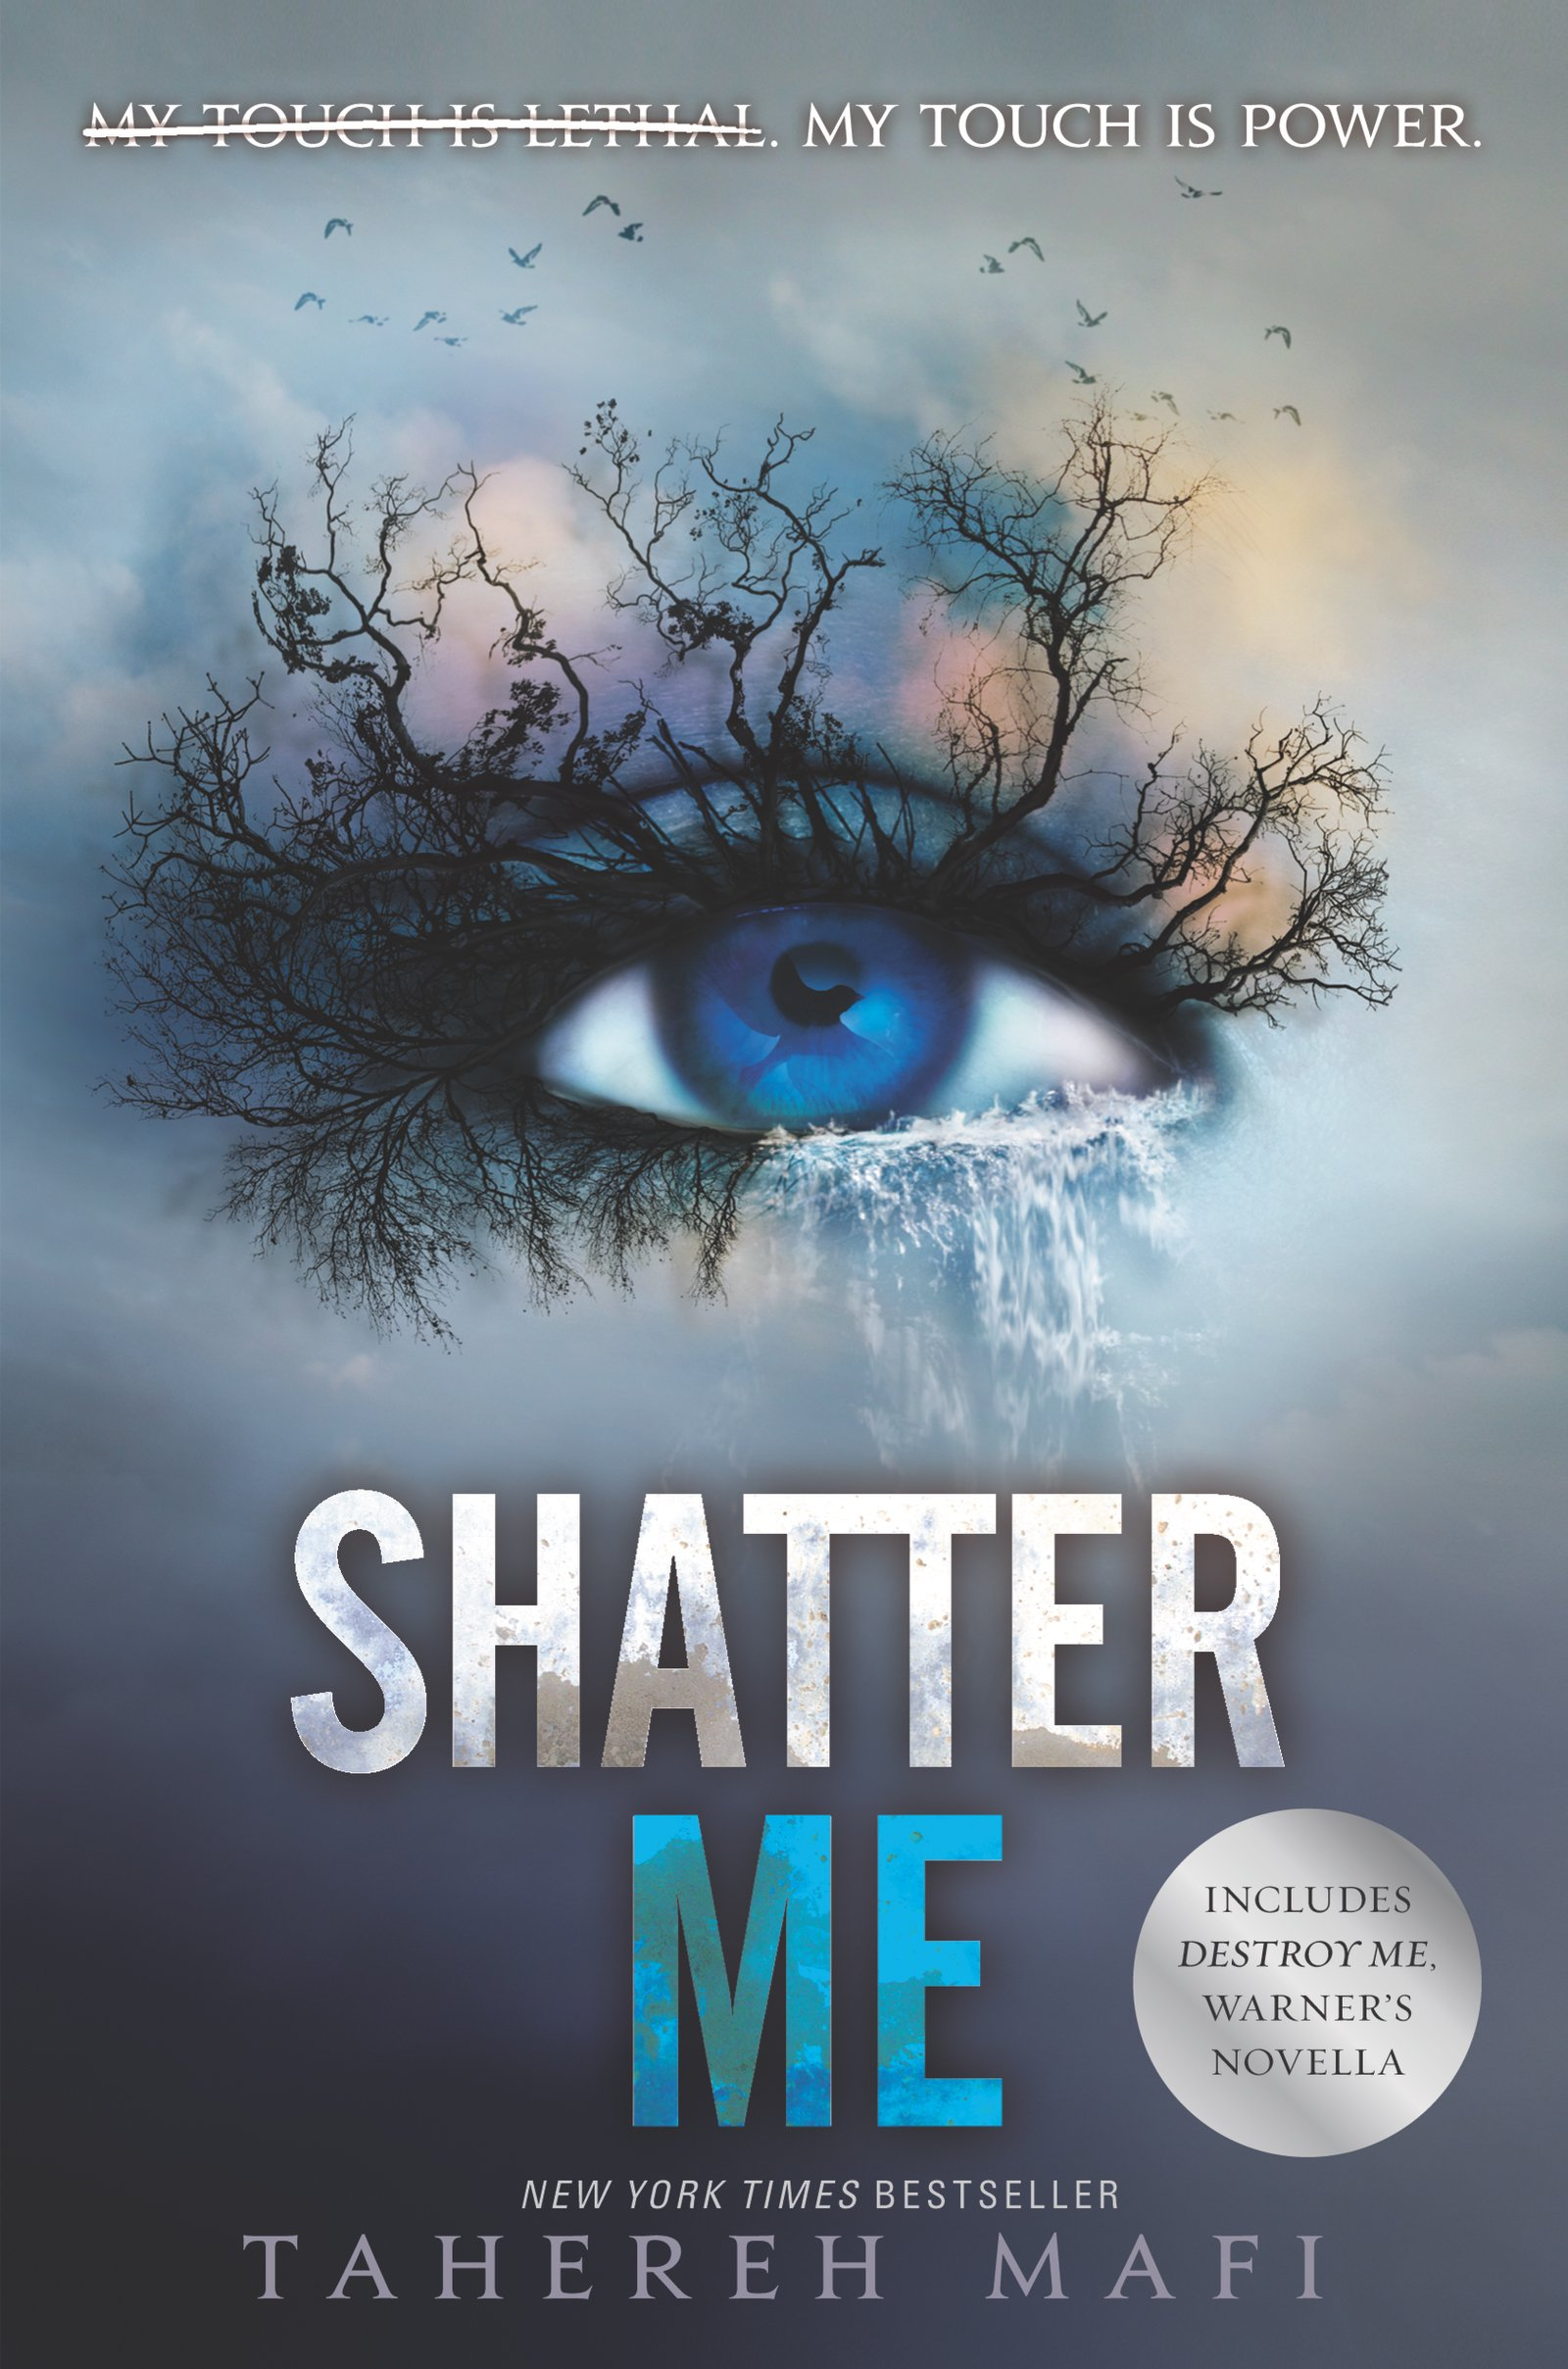 Amazon.com: Shatter Me (8601300047799): Mafi, Tahereh: Books